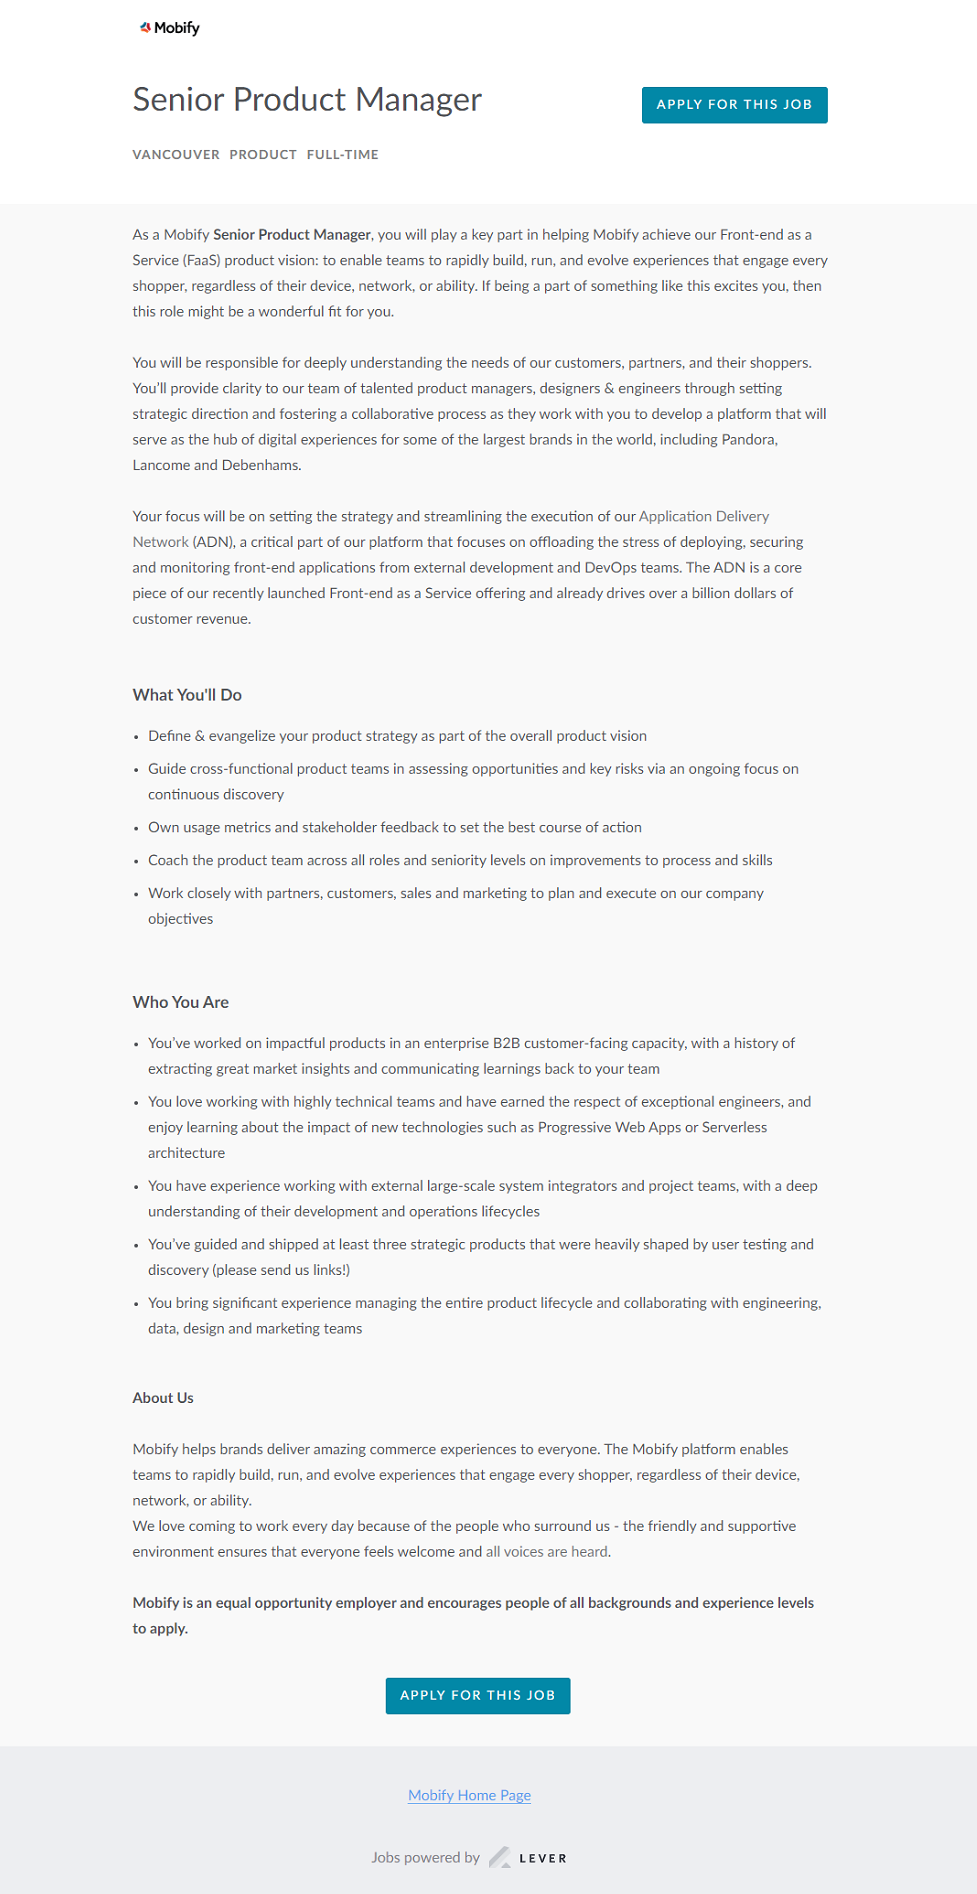 Lever ATS job page